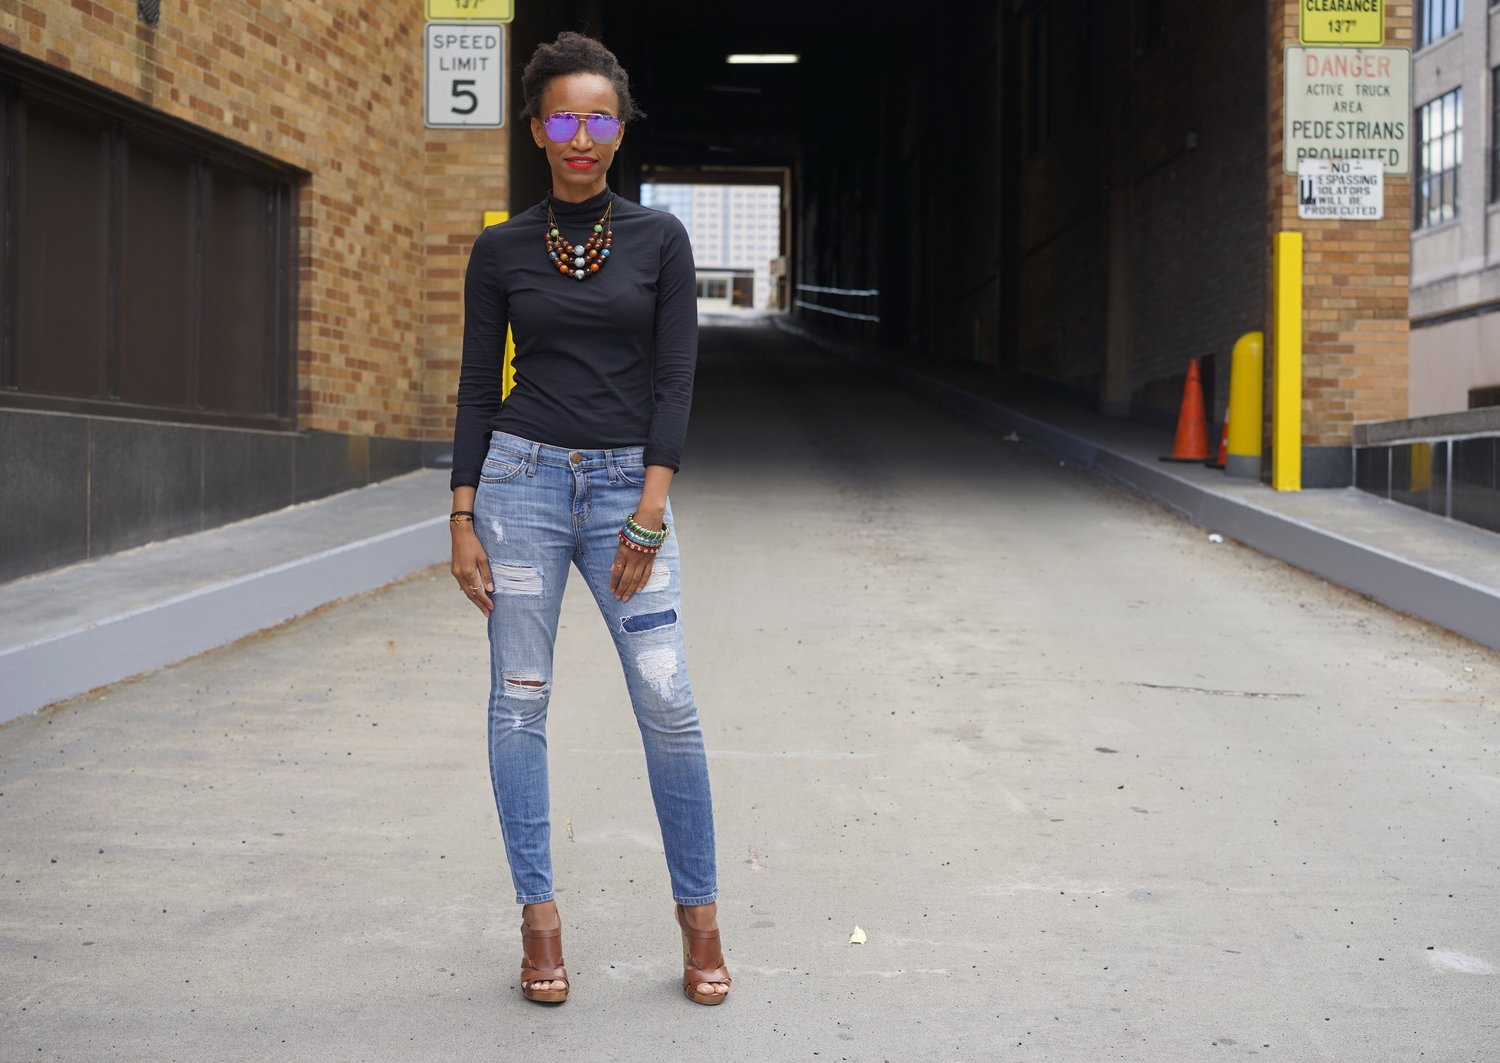 Christine_The_Syle_D'affaire_nyfw_yigal_azrouel_turtleneck_hudson_jeans_ripped_jeans_bangles_dolce_gabanna_wedges_mainsi_sunglasses_jacquie_aiche.jpg